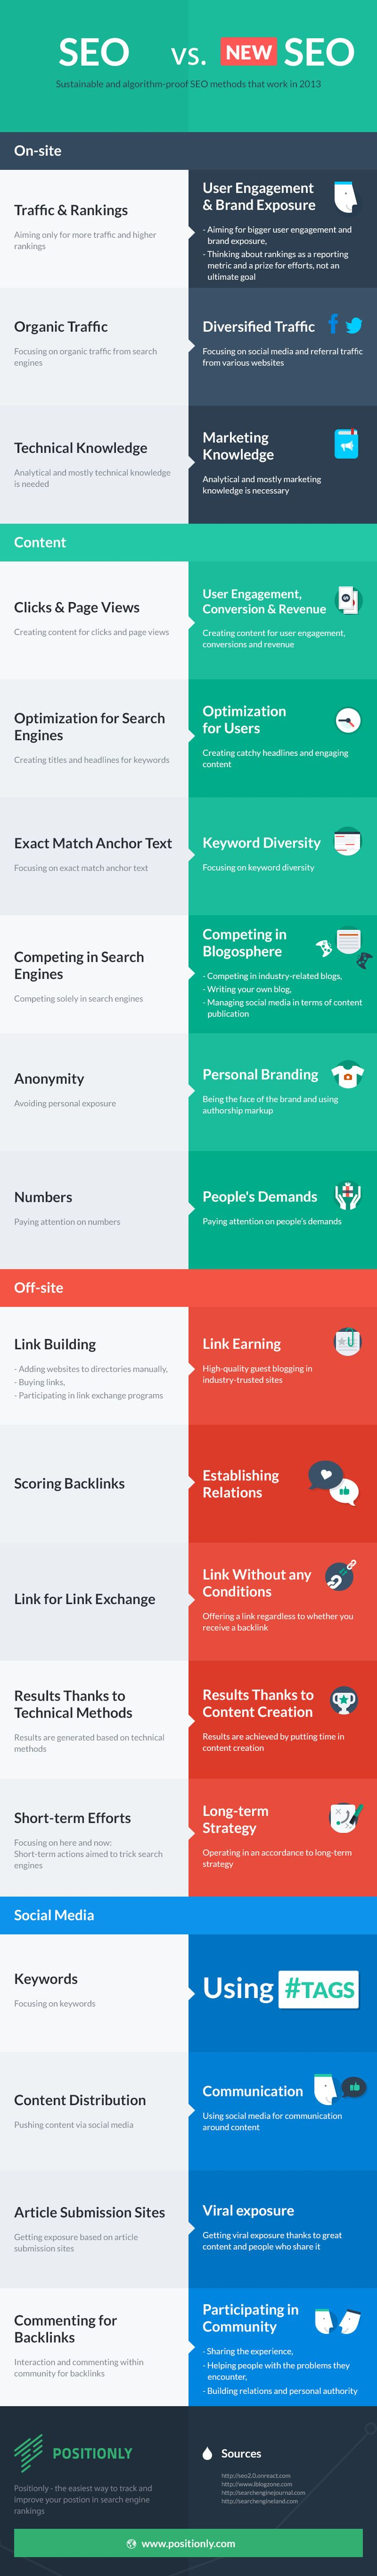 SEO vs. SEO – Sustainable And Algorithm-Proof Search Marketing Methods That Work #infographic